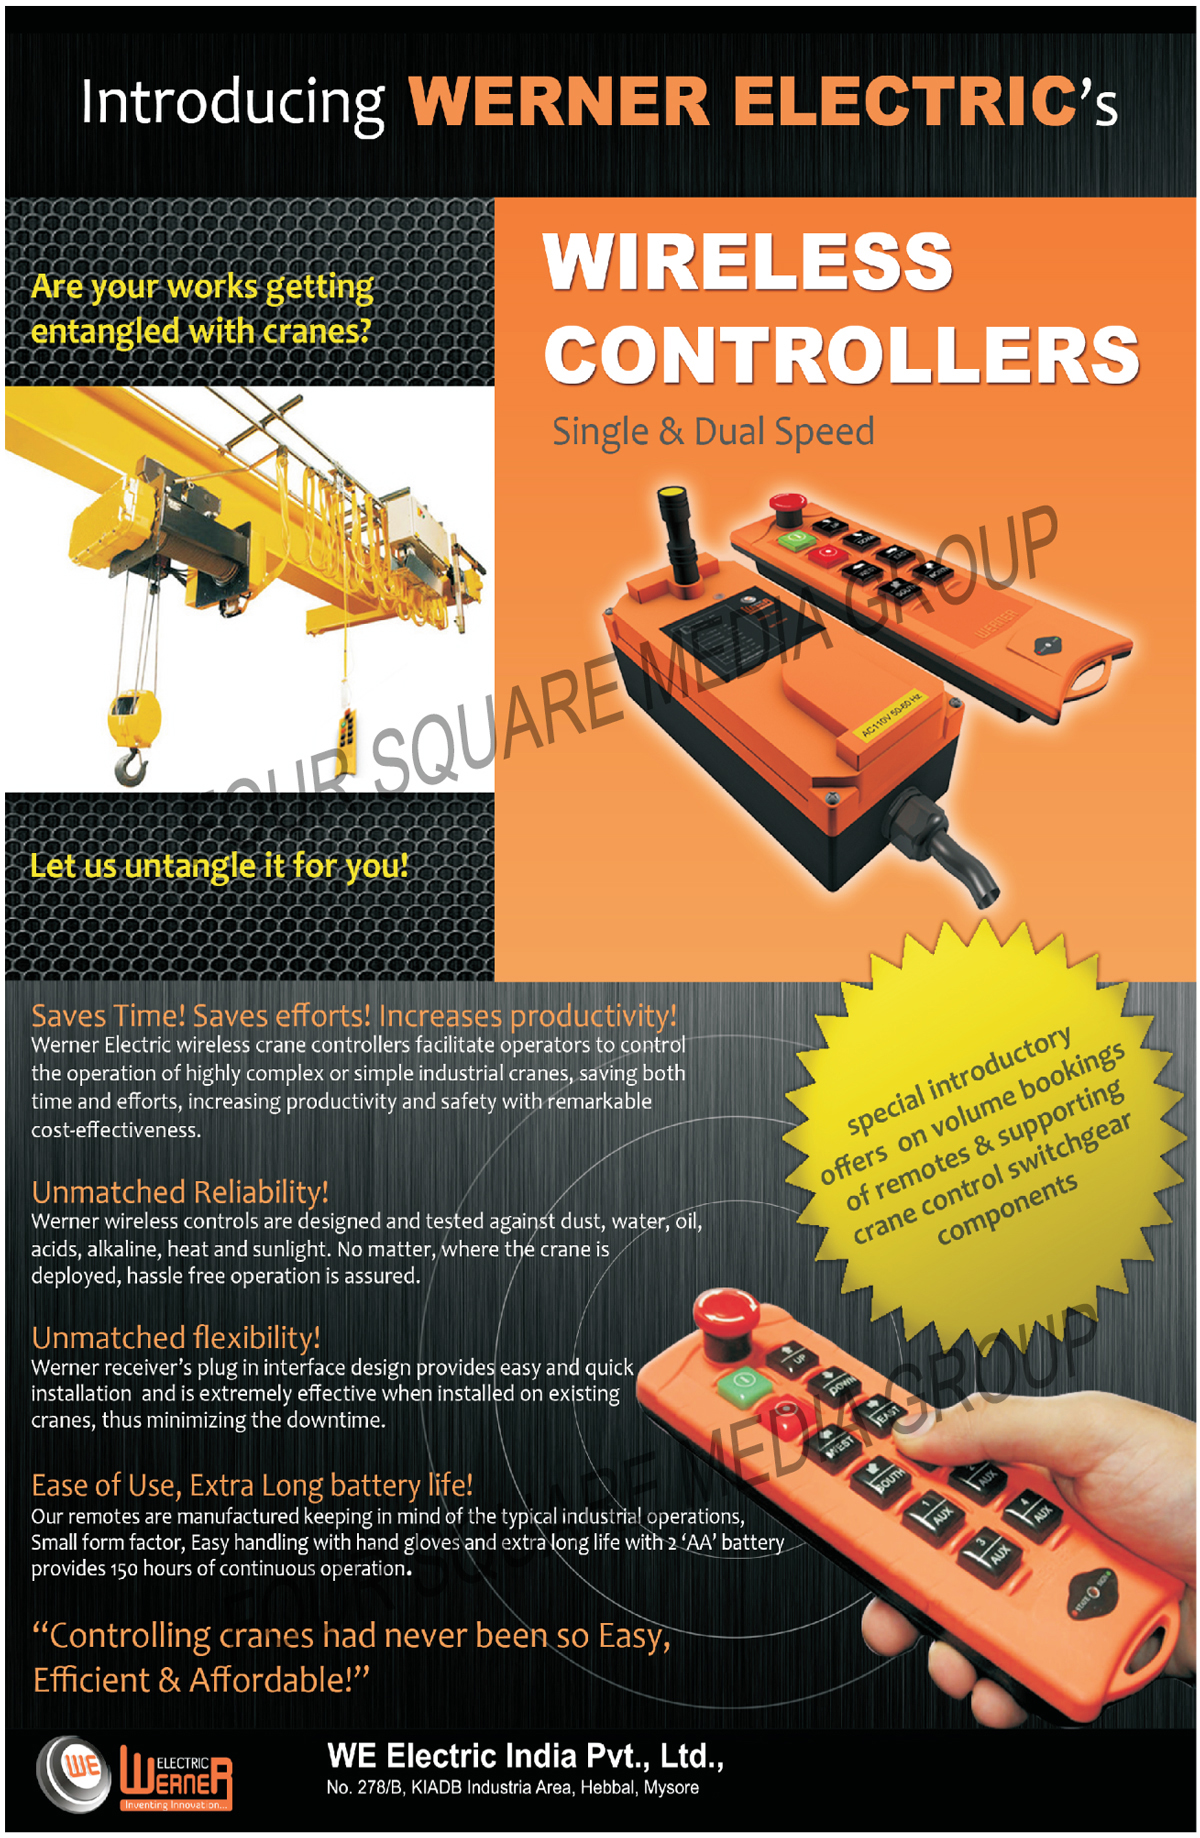 Interfaces Relay Modules, Interface Modules, Prefab Cables, Wireless Crane Controllers